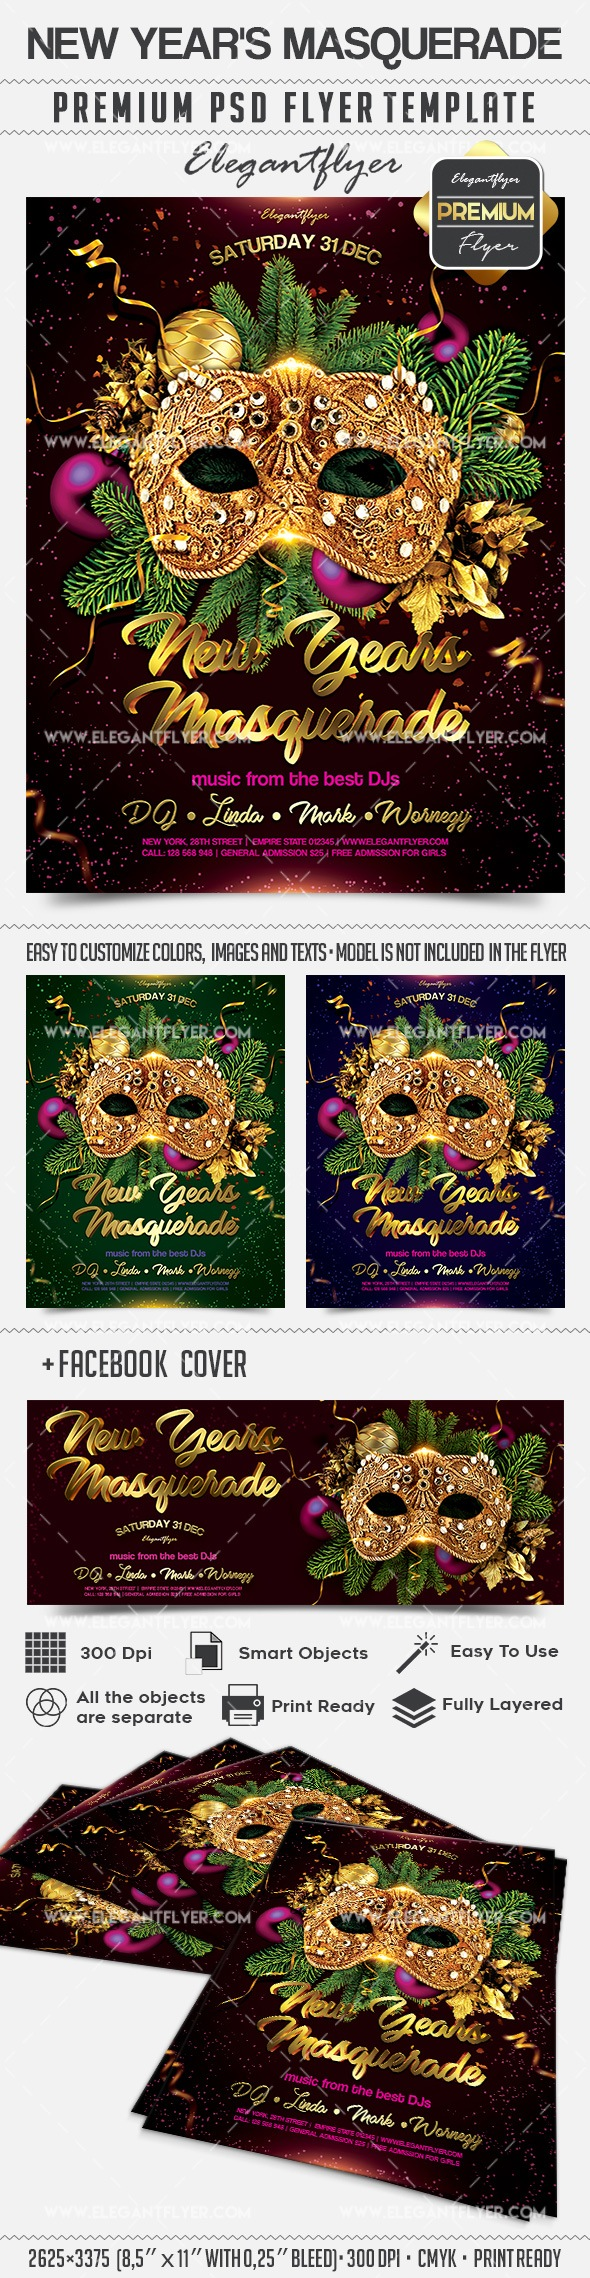 New Year's Masquerade – Flyer PSD Template